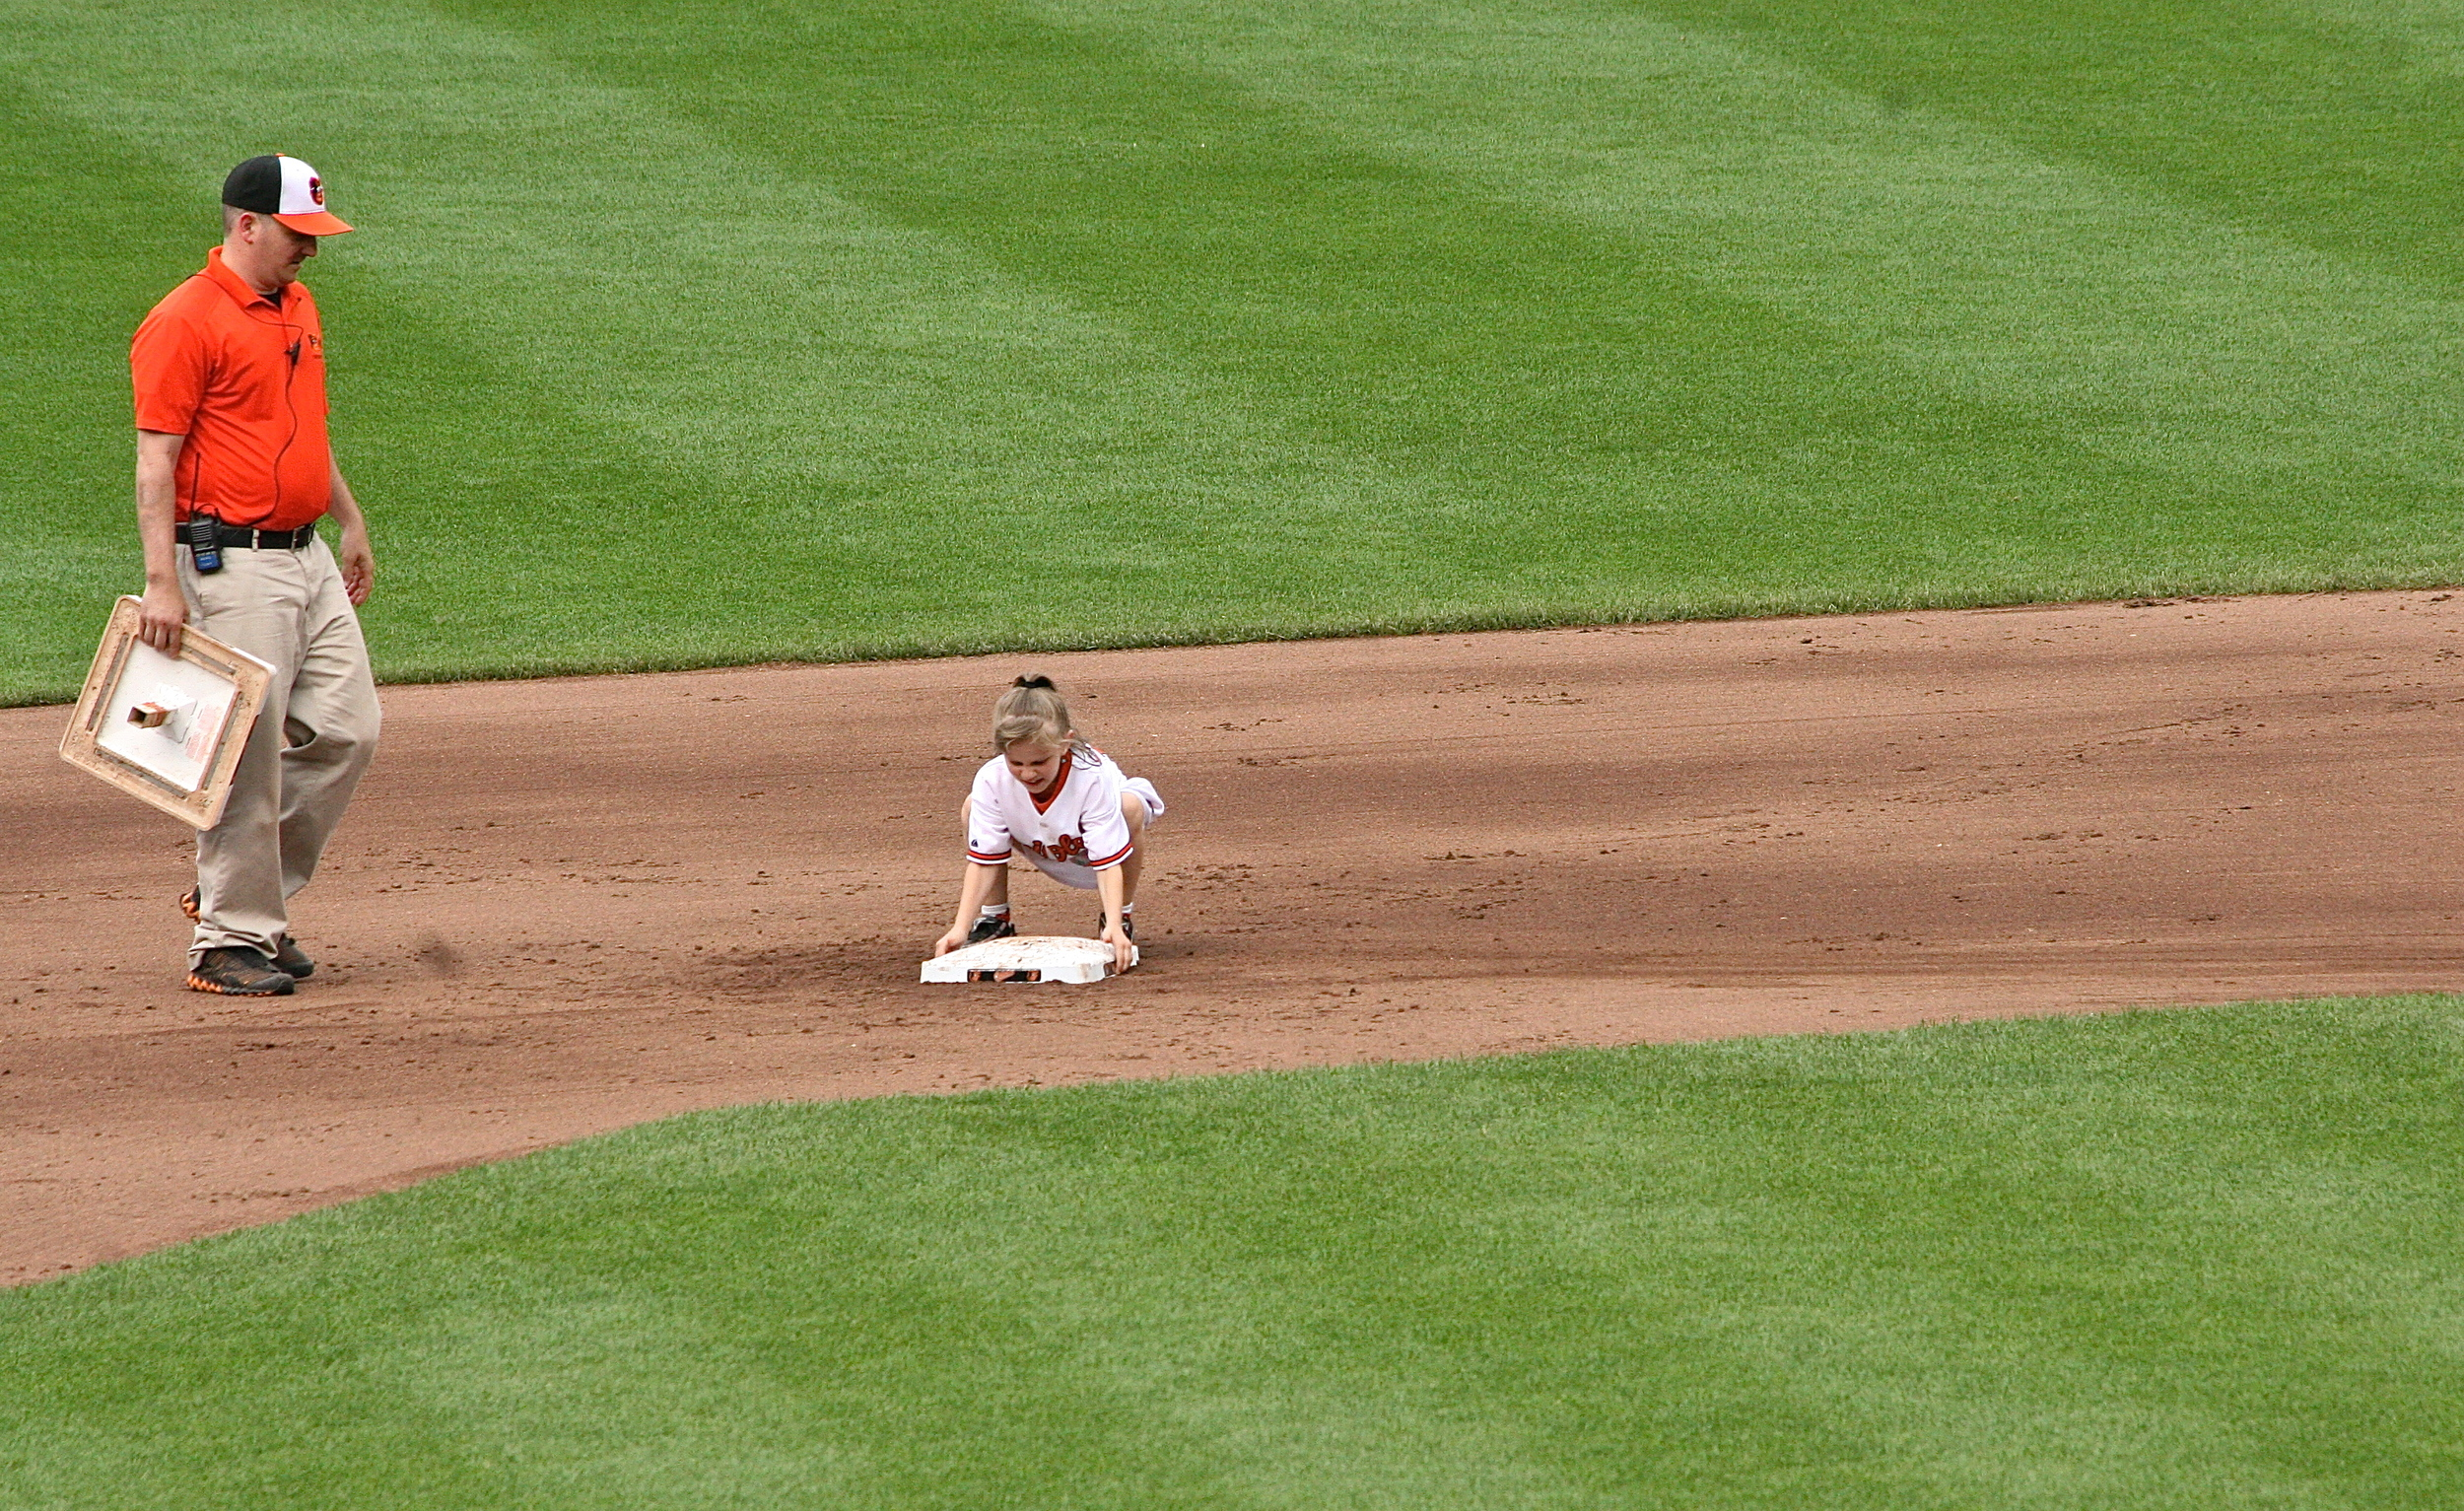 Stealing second!